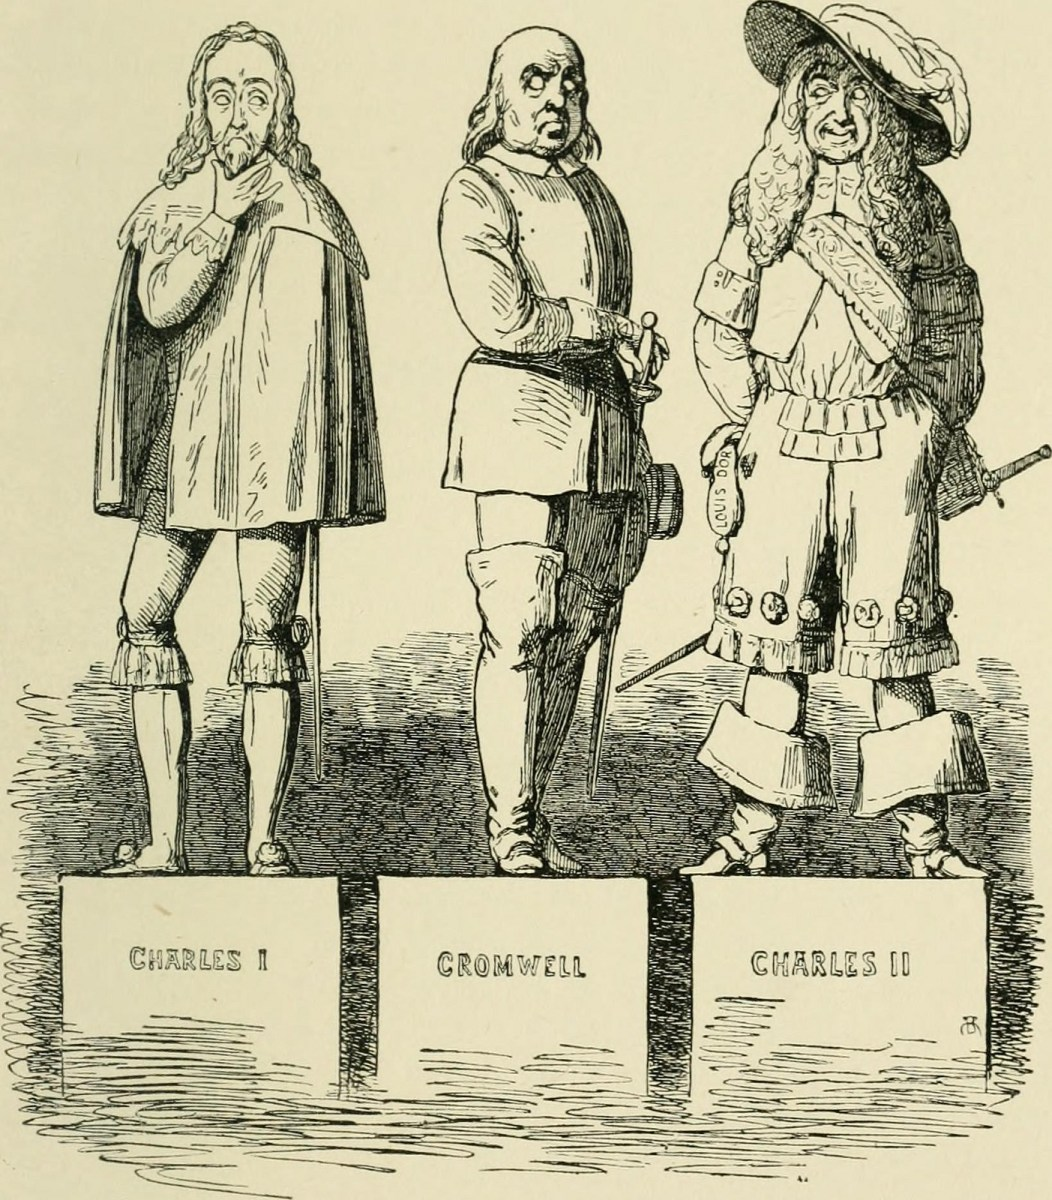 A statue of Charles I clasps his neck and a statue of Charles II looks sideways at the statue of Cromwell standing between them.